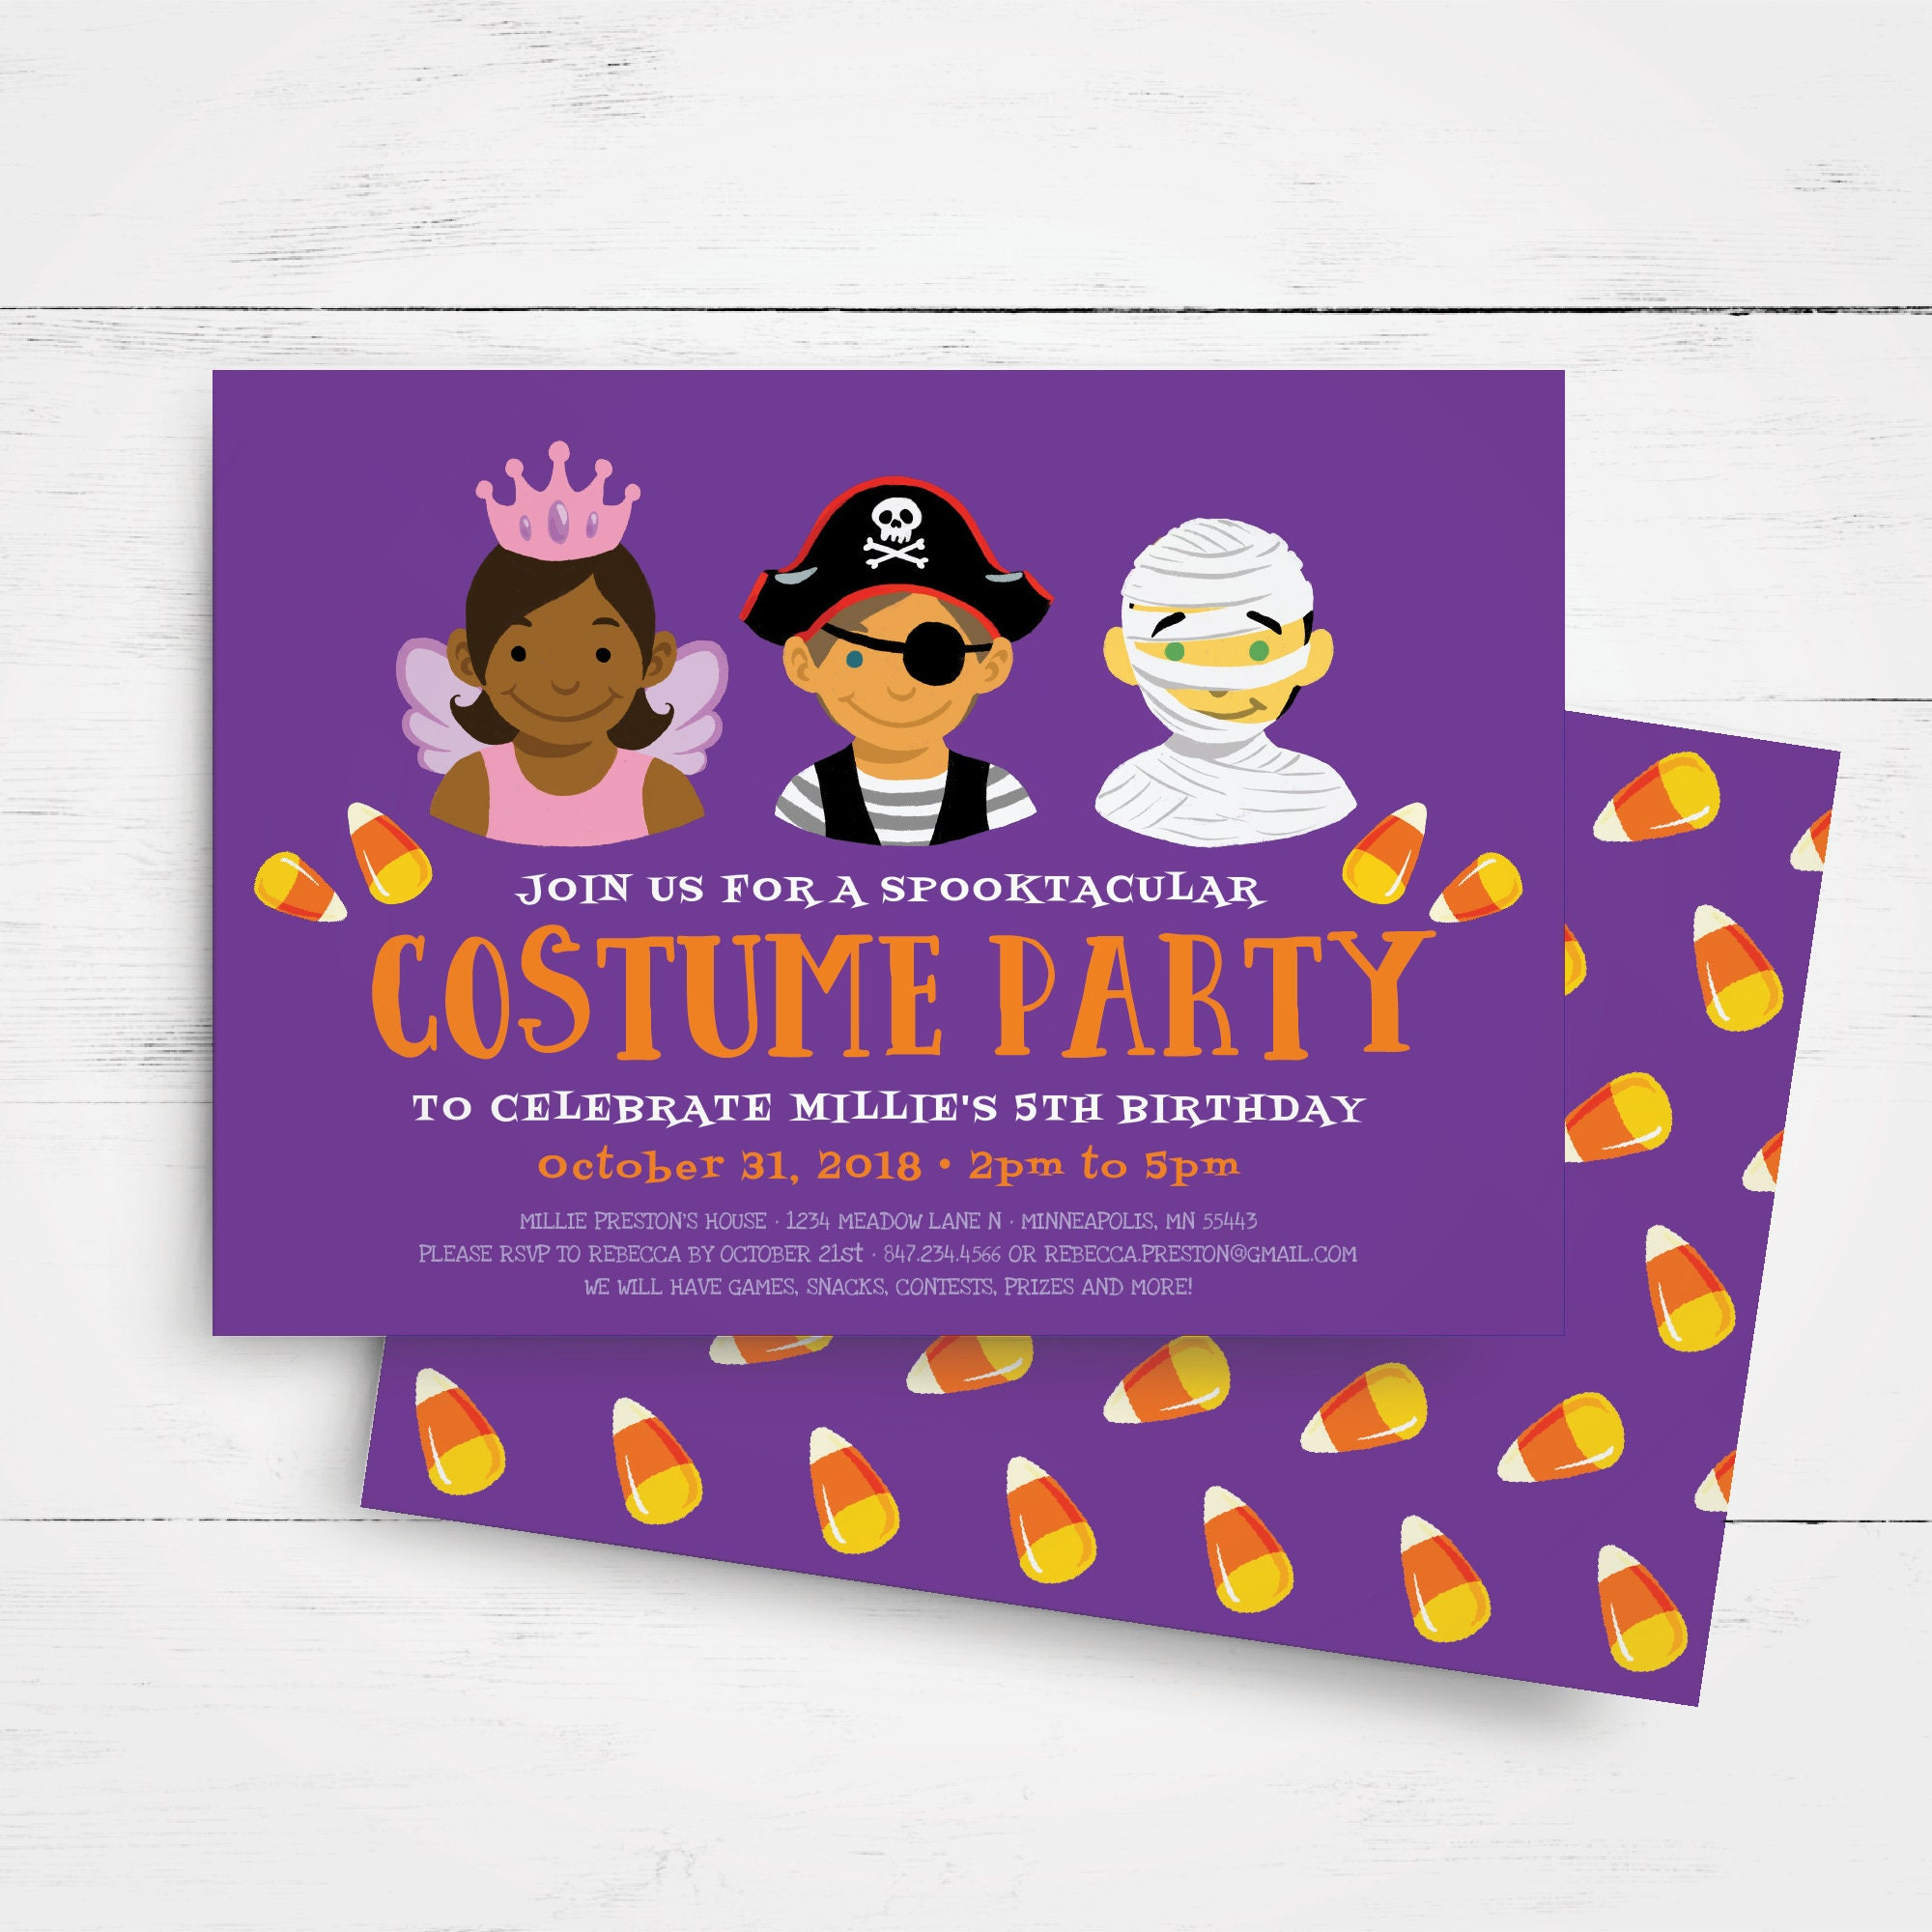 Halloween birthday invitation template kids birthday party halloween birthday invitation template kids birthday party invitation costume party invitation halloween party invitations girl boy stopboris Choice Image